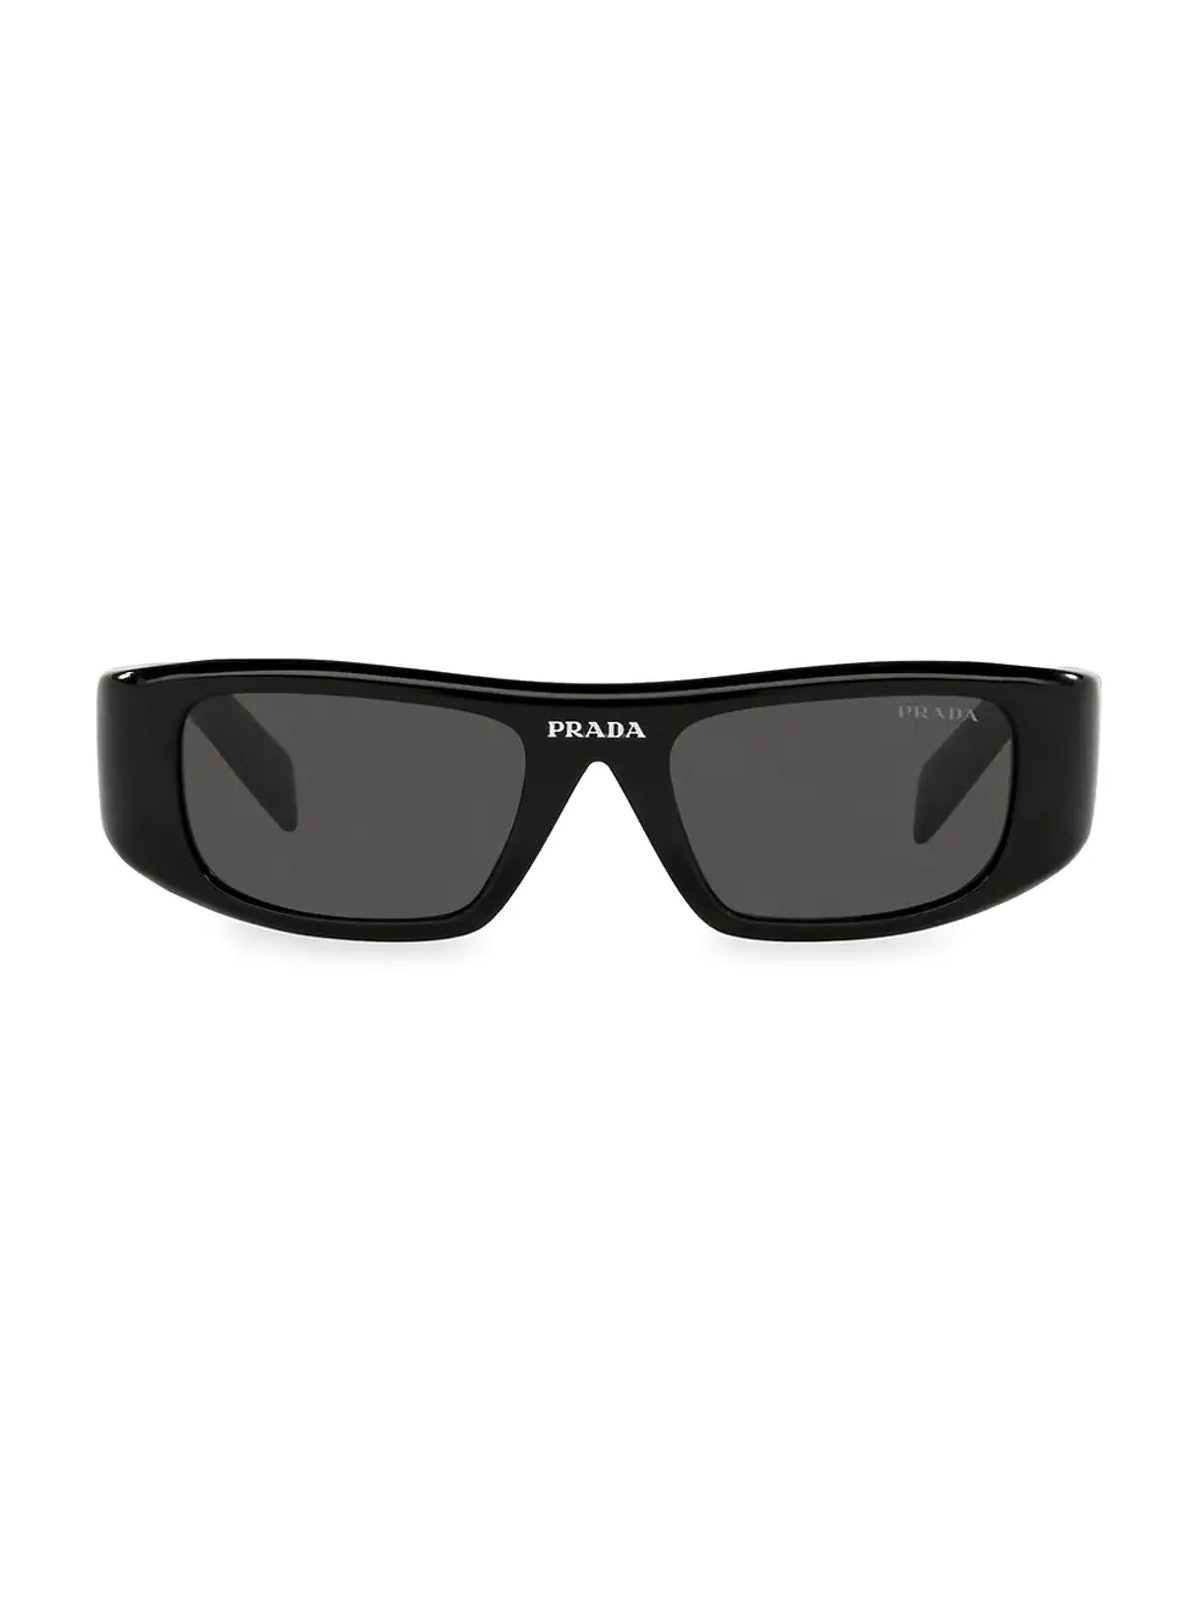 49MM Rectangular Sunglasses from Prada, available on Saks Fifth Avenue.